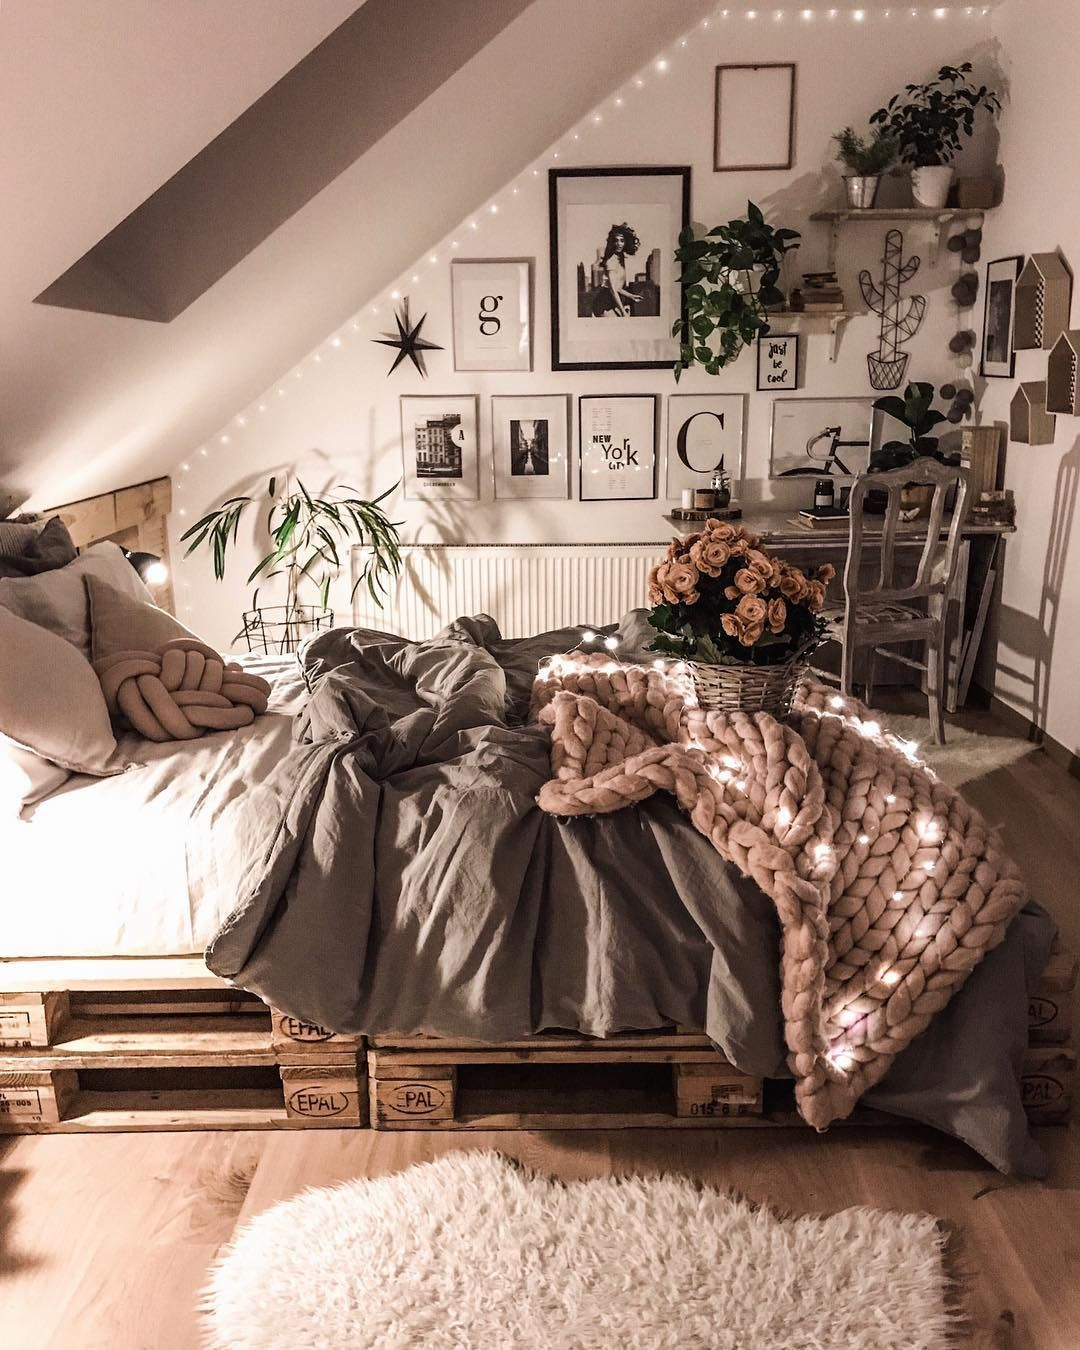 Happyvalentinesday So Think About It Bedroomfurnitureideasforhomedecoration Room Inspiration Bedroom Aesthetic Bedroom Bedroom Decor Most popular first home bedroom ideas